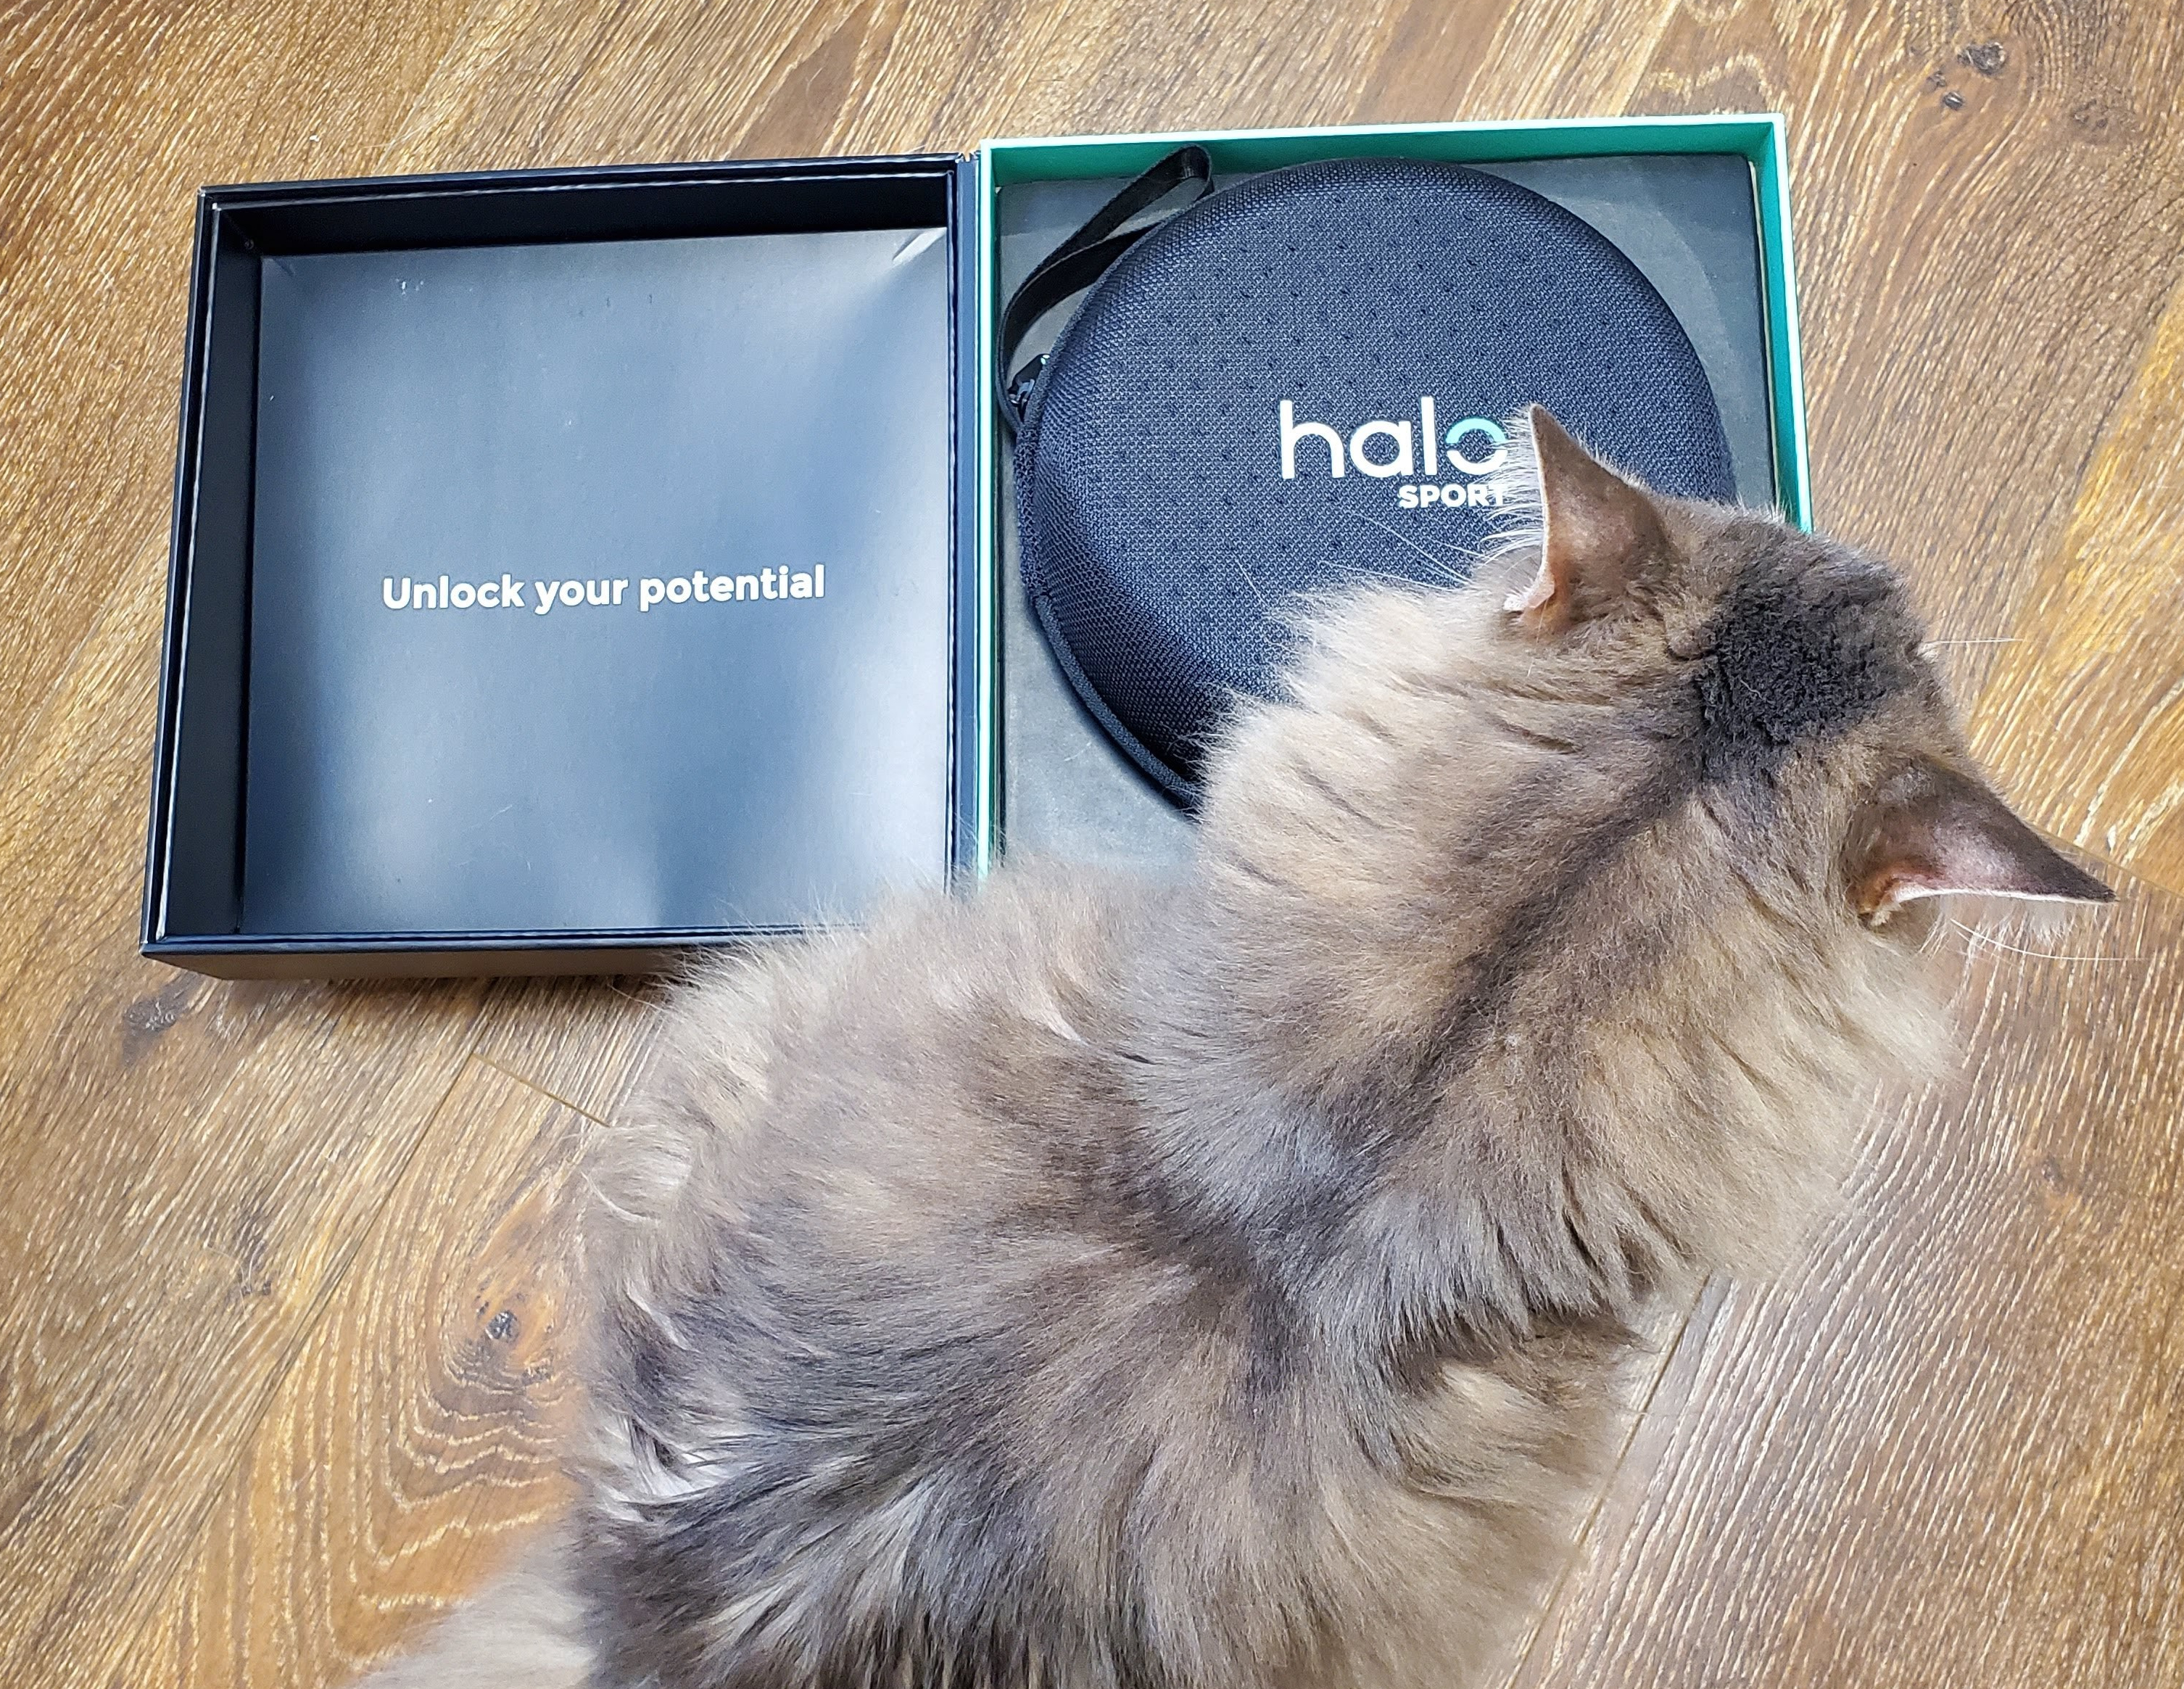 My cat sitting next to the box with the Halo sport headphones in it